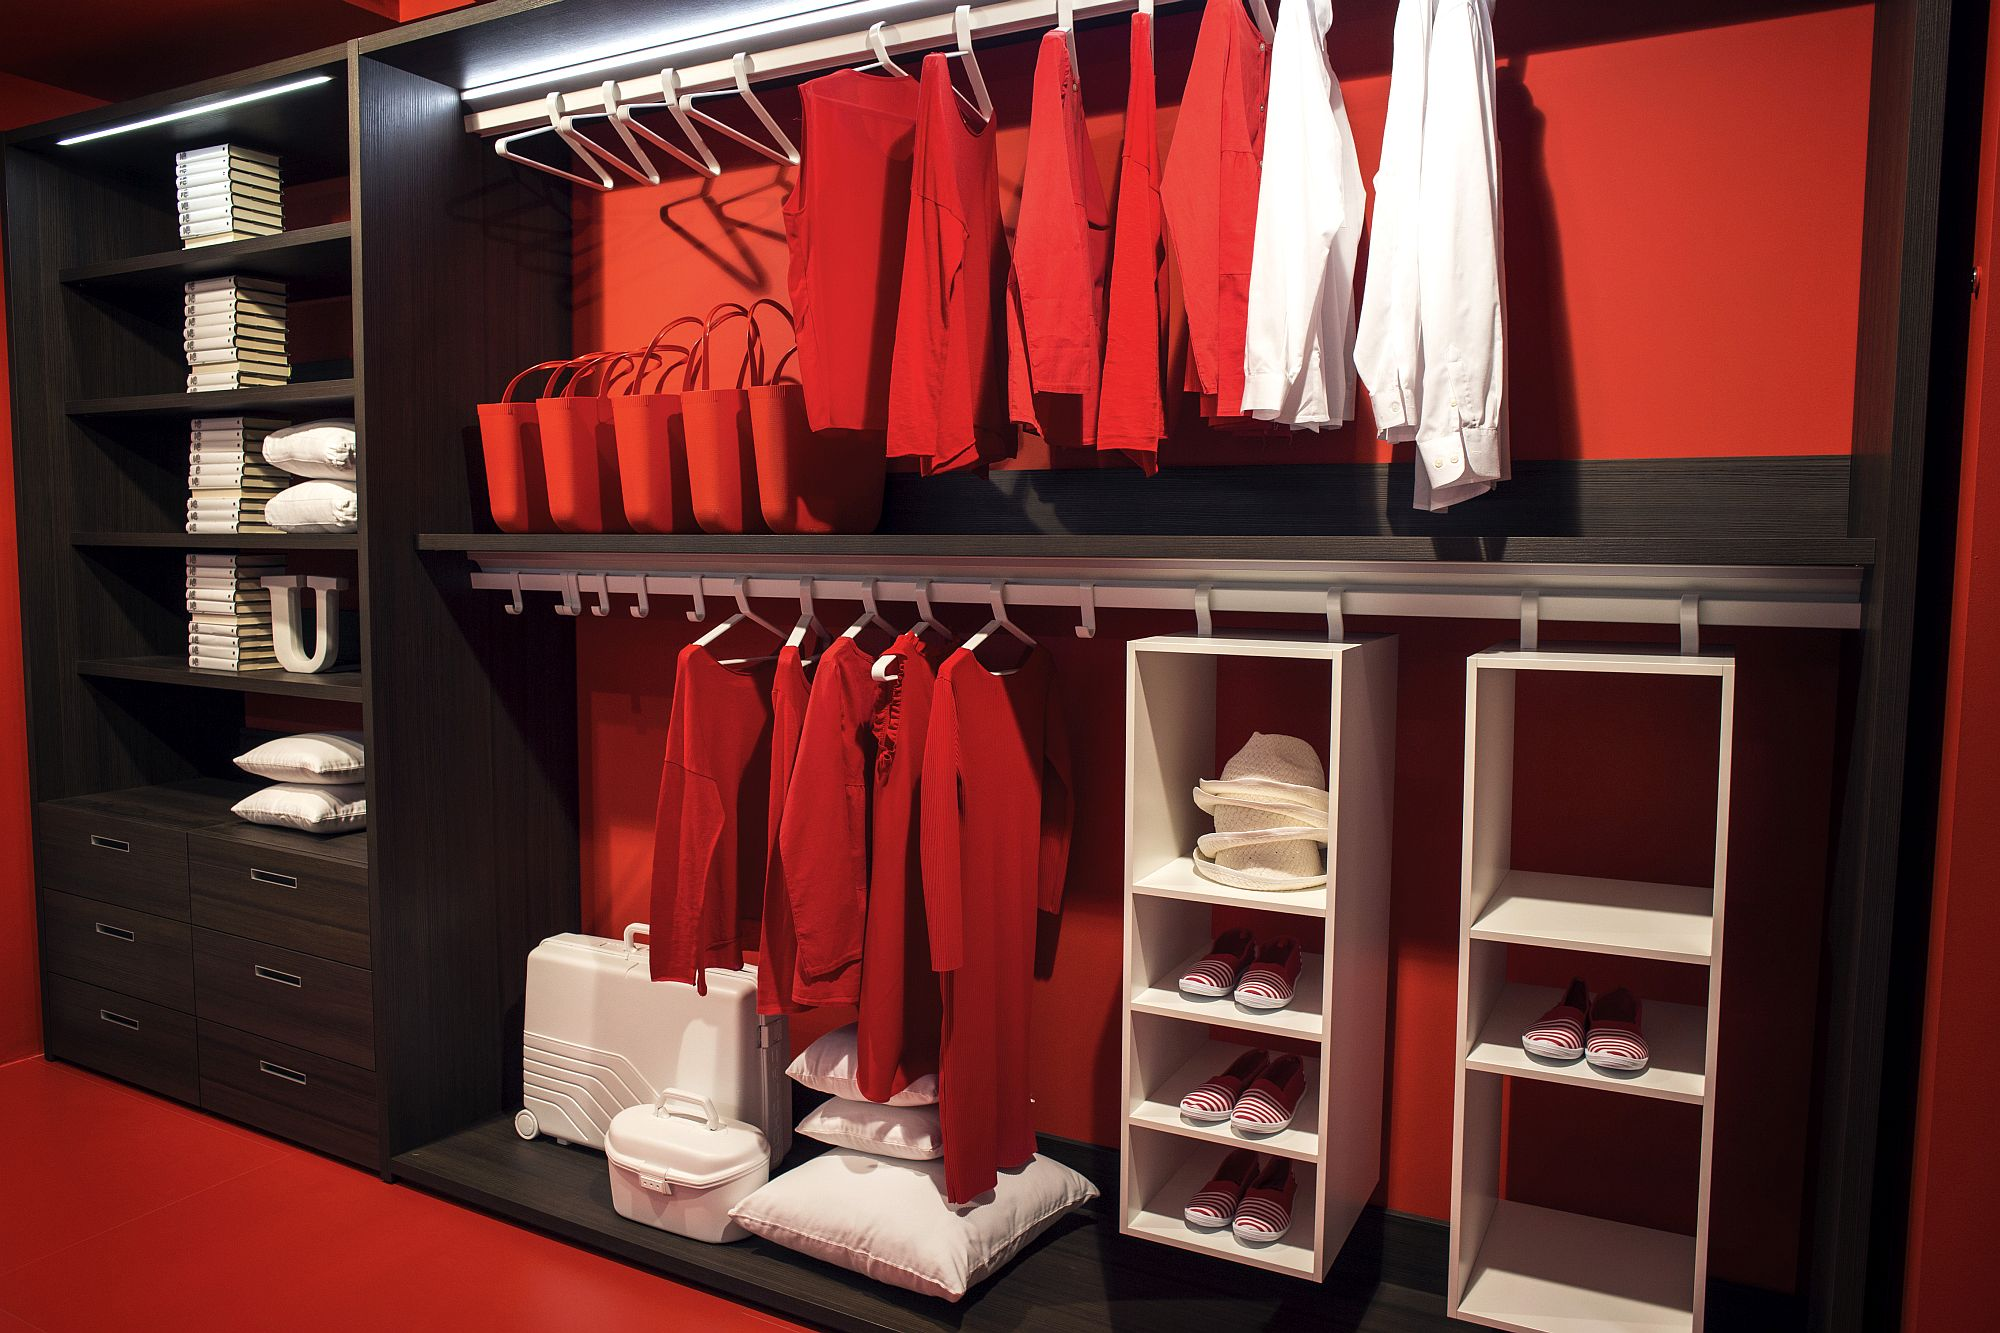 Exquisite open closet from Erba is a contemporary showstopper